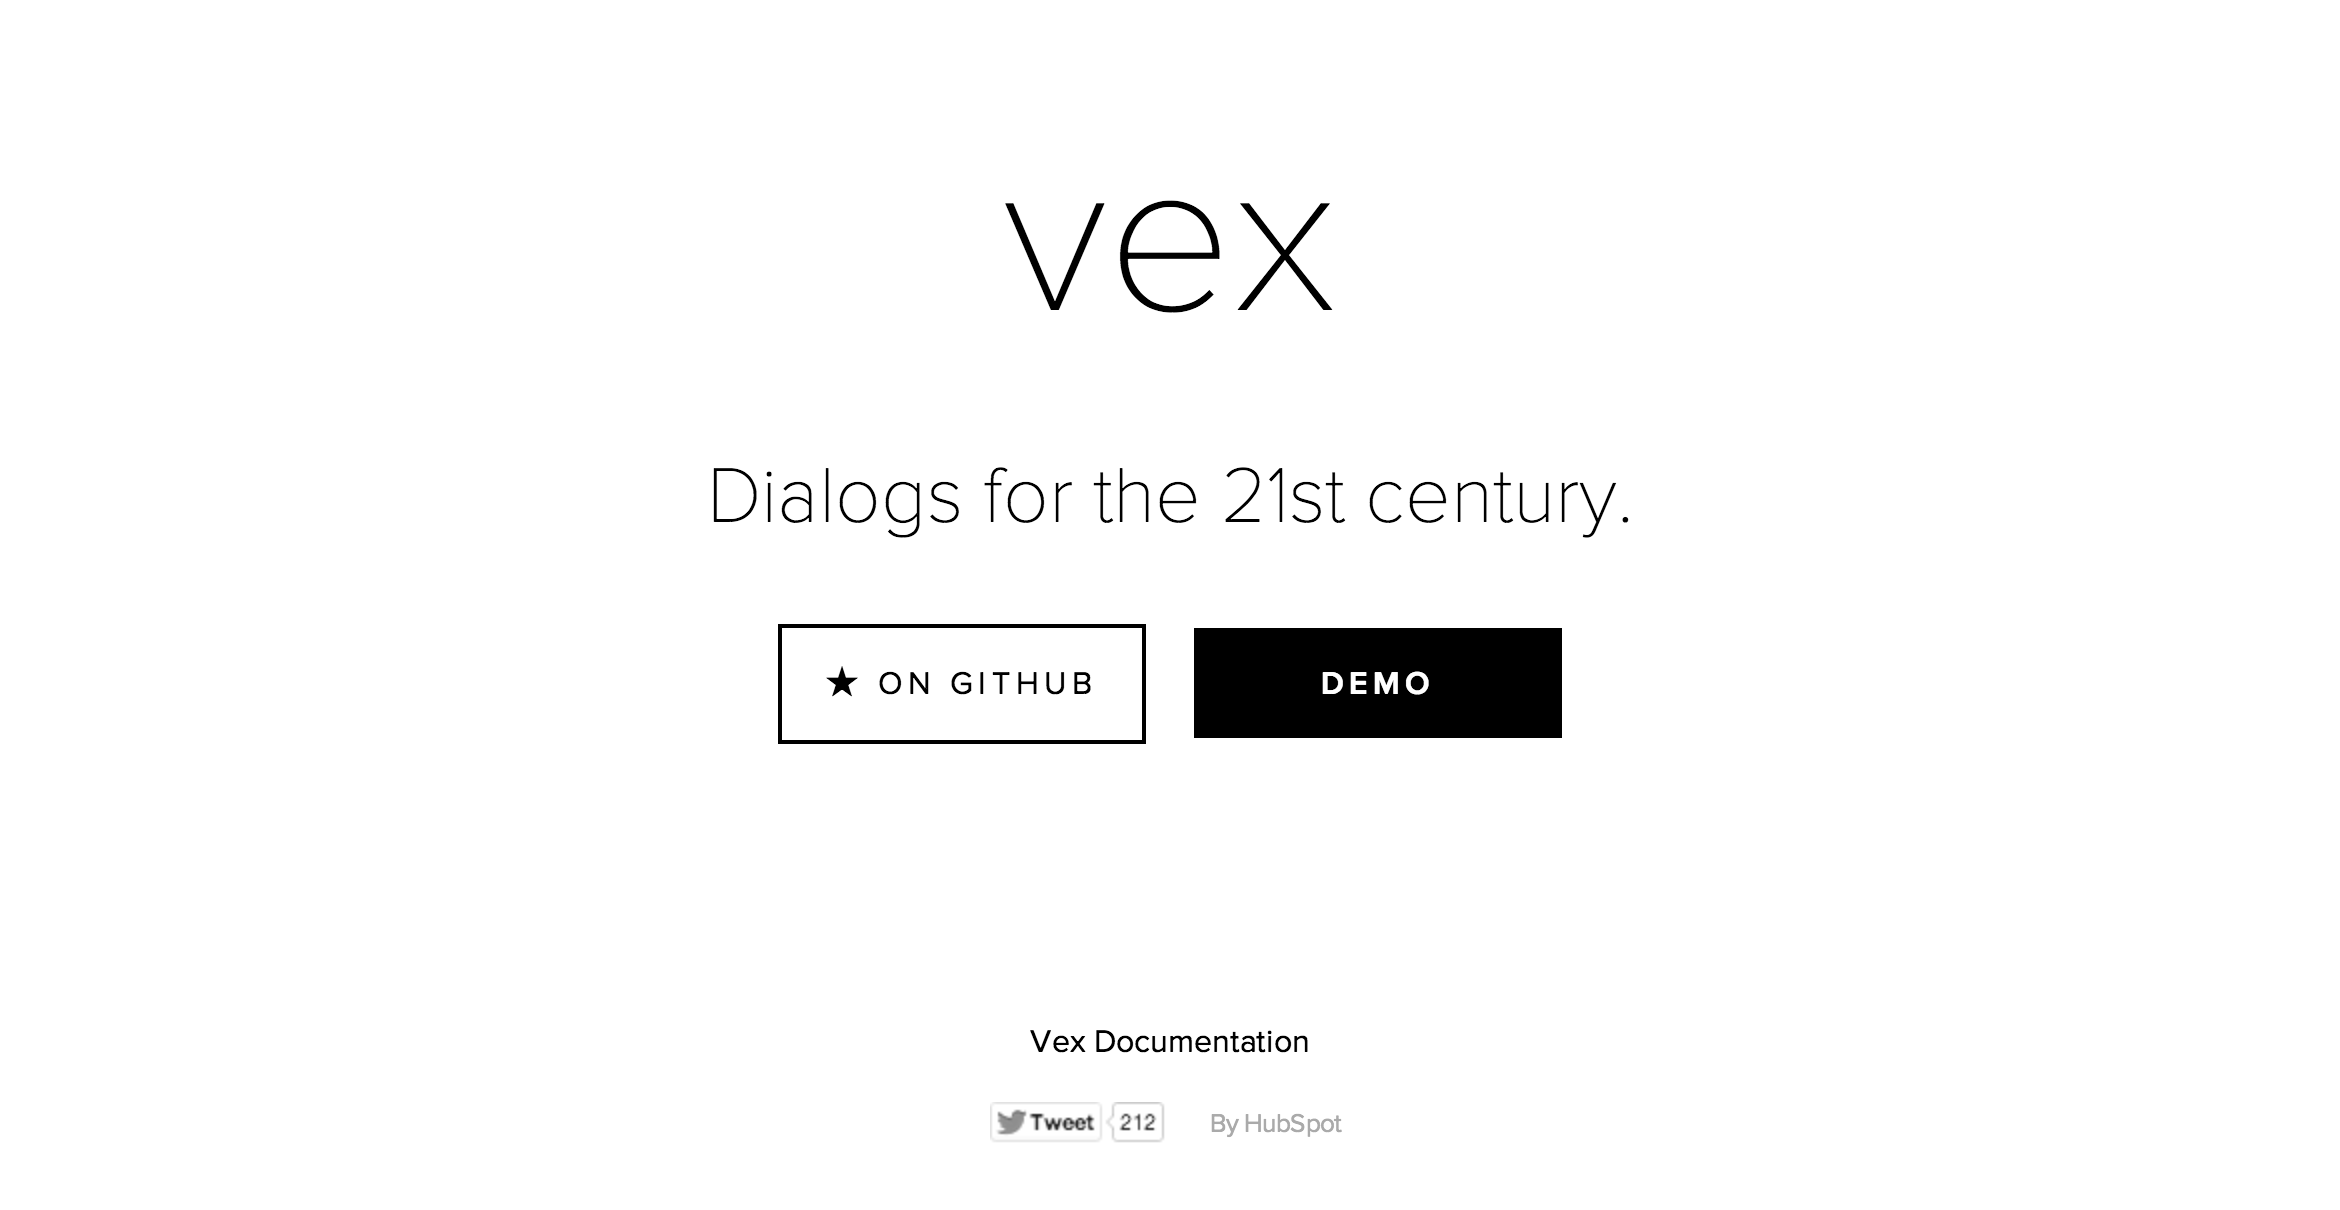 A Nice Set Of Modal Dialog Templates, With Nice Transitions And Animations,  Vex: